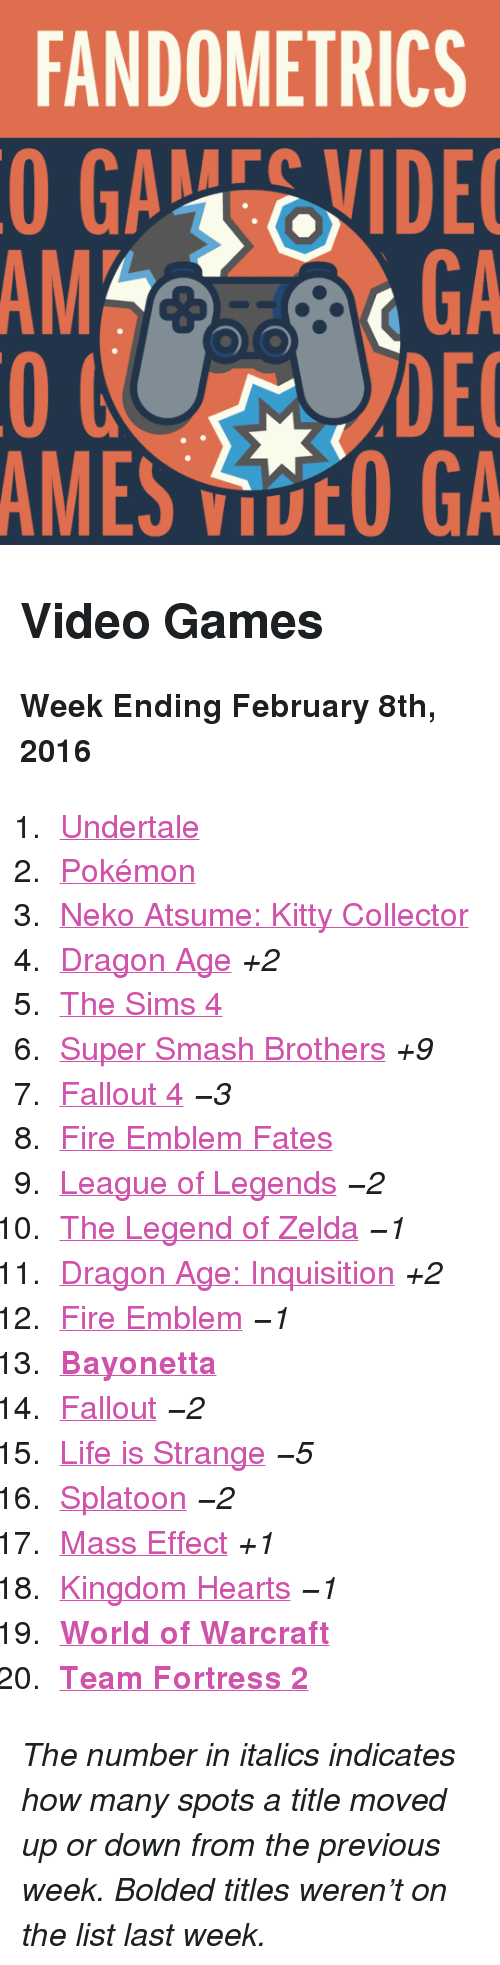 "Bayonetta: FANDOMETRICS  GAEVIDE  GA  DEC  AMES VOO GA  AM <h2>Video Games</h2><p><b>Week Ending February 8th, 2016</b></p><ol><li><a href=""http://www.tumblr.com/search/undertale"">Undertale</a></li>  <li><a href=""http://www.tumblr.com/search/pokemon"">Pokémon</a></li>  <li><a href=""http://www.tumblr.com/search/neko%20atsume"">Neko Atsume: Kitty Collector</a></li>  <li><a href=""http://www.tumblr.com/search/dragon%20age"">Dragon Age</a> <i>+2</i></li>  <li><a href=""http://www.tumblr.com/search/sims%204"">The Sims 4</a></li>  <li><a href=""http://www.tumblr.com/search/super%20smash%20bros"">Super Smash Brothers</a> <i>+9</i></li>  <li><a href=""http://www.tumblr.com/search/fallout%204"">Fallout 4</a> <i>−3</i></li>  <li><a href=""http://www.tumblr.com/search/fire%20emblem%20fates"">Fire Emblem Fates</a> </li>  <li><a href=""http://www.tumblr.com/search/league%20of%20legends"">League of Legends</a> <i>−2</i></li>  <li><a href=""http://www.tumblr.com/search/legend%20of%20zelda"">The Legend of Zelda</a> <i>−1</i></li>  <li><a href=""http://www.tumblr.com/search/dragon%20age%20inquisition"">Dragon Age: Inquisition</a> <i>+2</i></li>  <li><a href=""http://www.tumblr.com/search/fire%20emblem"">Fire Emblem</a> <i>−1</i></li>  <li><a href=""http://www.tumblr.com/search/bayonetta""><b>Bayonetta</b></a></li>  <li><a href=""http://www.tumblr.com/search/fallout"">Fallout</a> <i>−2</i></li>  <li><a href=""http://www.tumblr.com/search/life%20is%20strange"">Life is Strange</a> <i>−5</i></li>  <li><a href=""http://www.tumblr.com/search/splatoon"">Splatoon</a> <i>−2</i></li>  <li><a href=""http://www.tumblr.com/search/mass%20effect"">Mass Effect</a> <i>+1</i></li>  <li><a href=""http://www.tumblr.com/search/kingdom%20hearts"">Kingdom Hearts</a> <i>−1</i></li>  <li><a href=""http://www.tumblr.com/search/world%20of%20warcraft""><b>World of Warcraft</b></a></li>  <li><a href=""http://www.tumblr.com/search/tf2""><b>Team Fortress 2</b></a></li></ol><p><i>The number in italics indicates how many spots a title moved up or down from the previous week. Bolded titles weren't on the list last week.</i></p>"